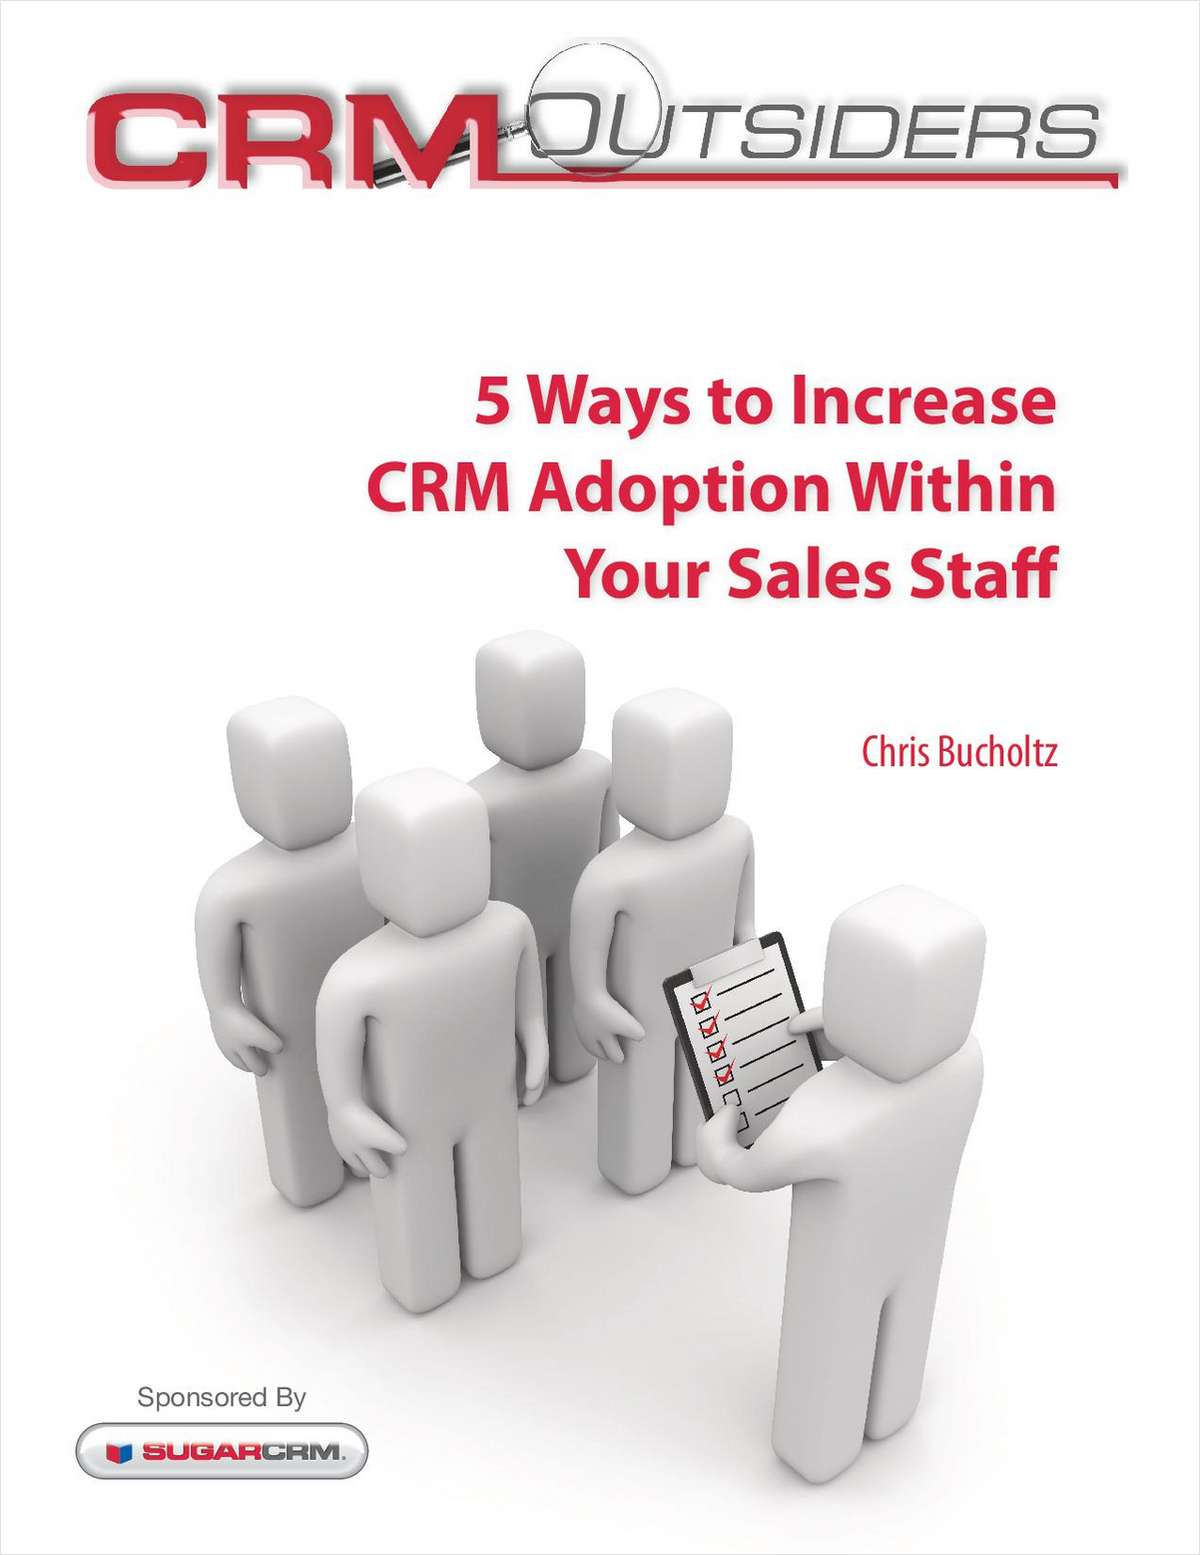 5 Ways to Increase CRM Adoption Within Your Sales Staff